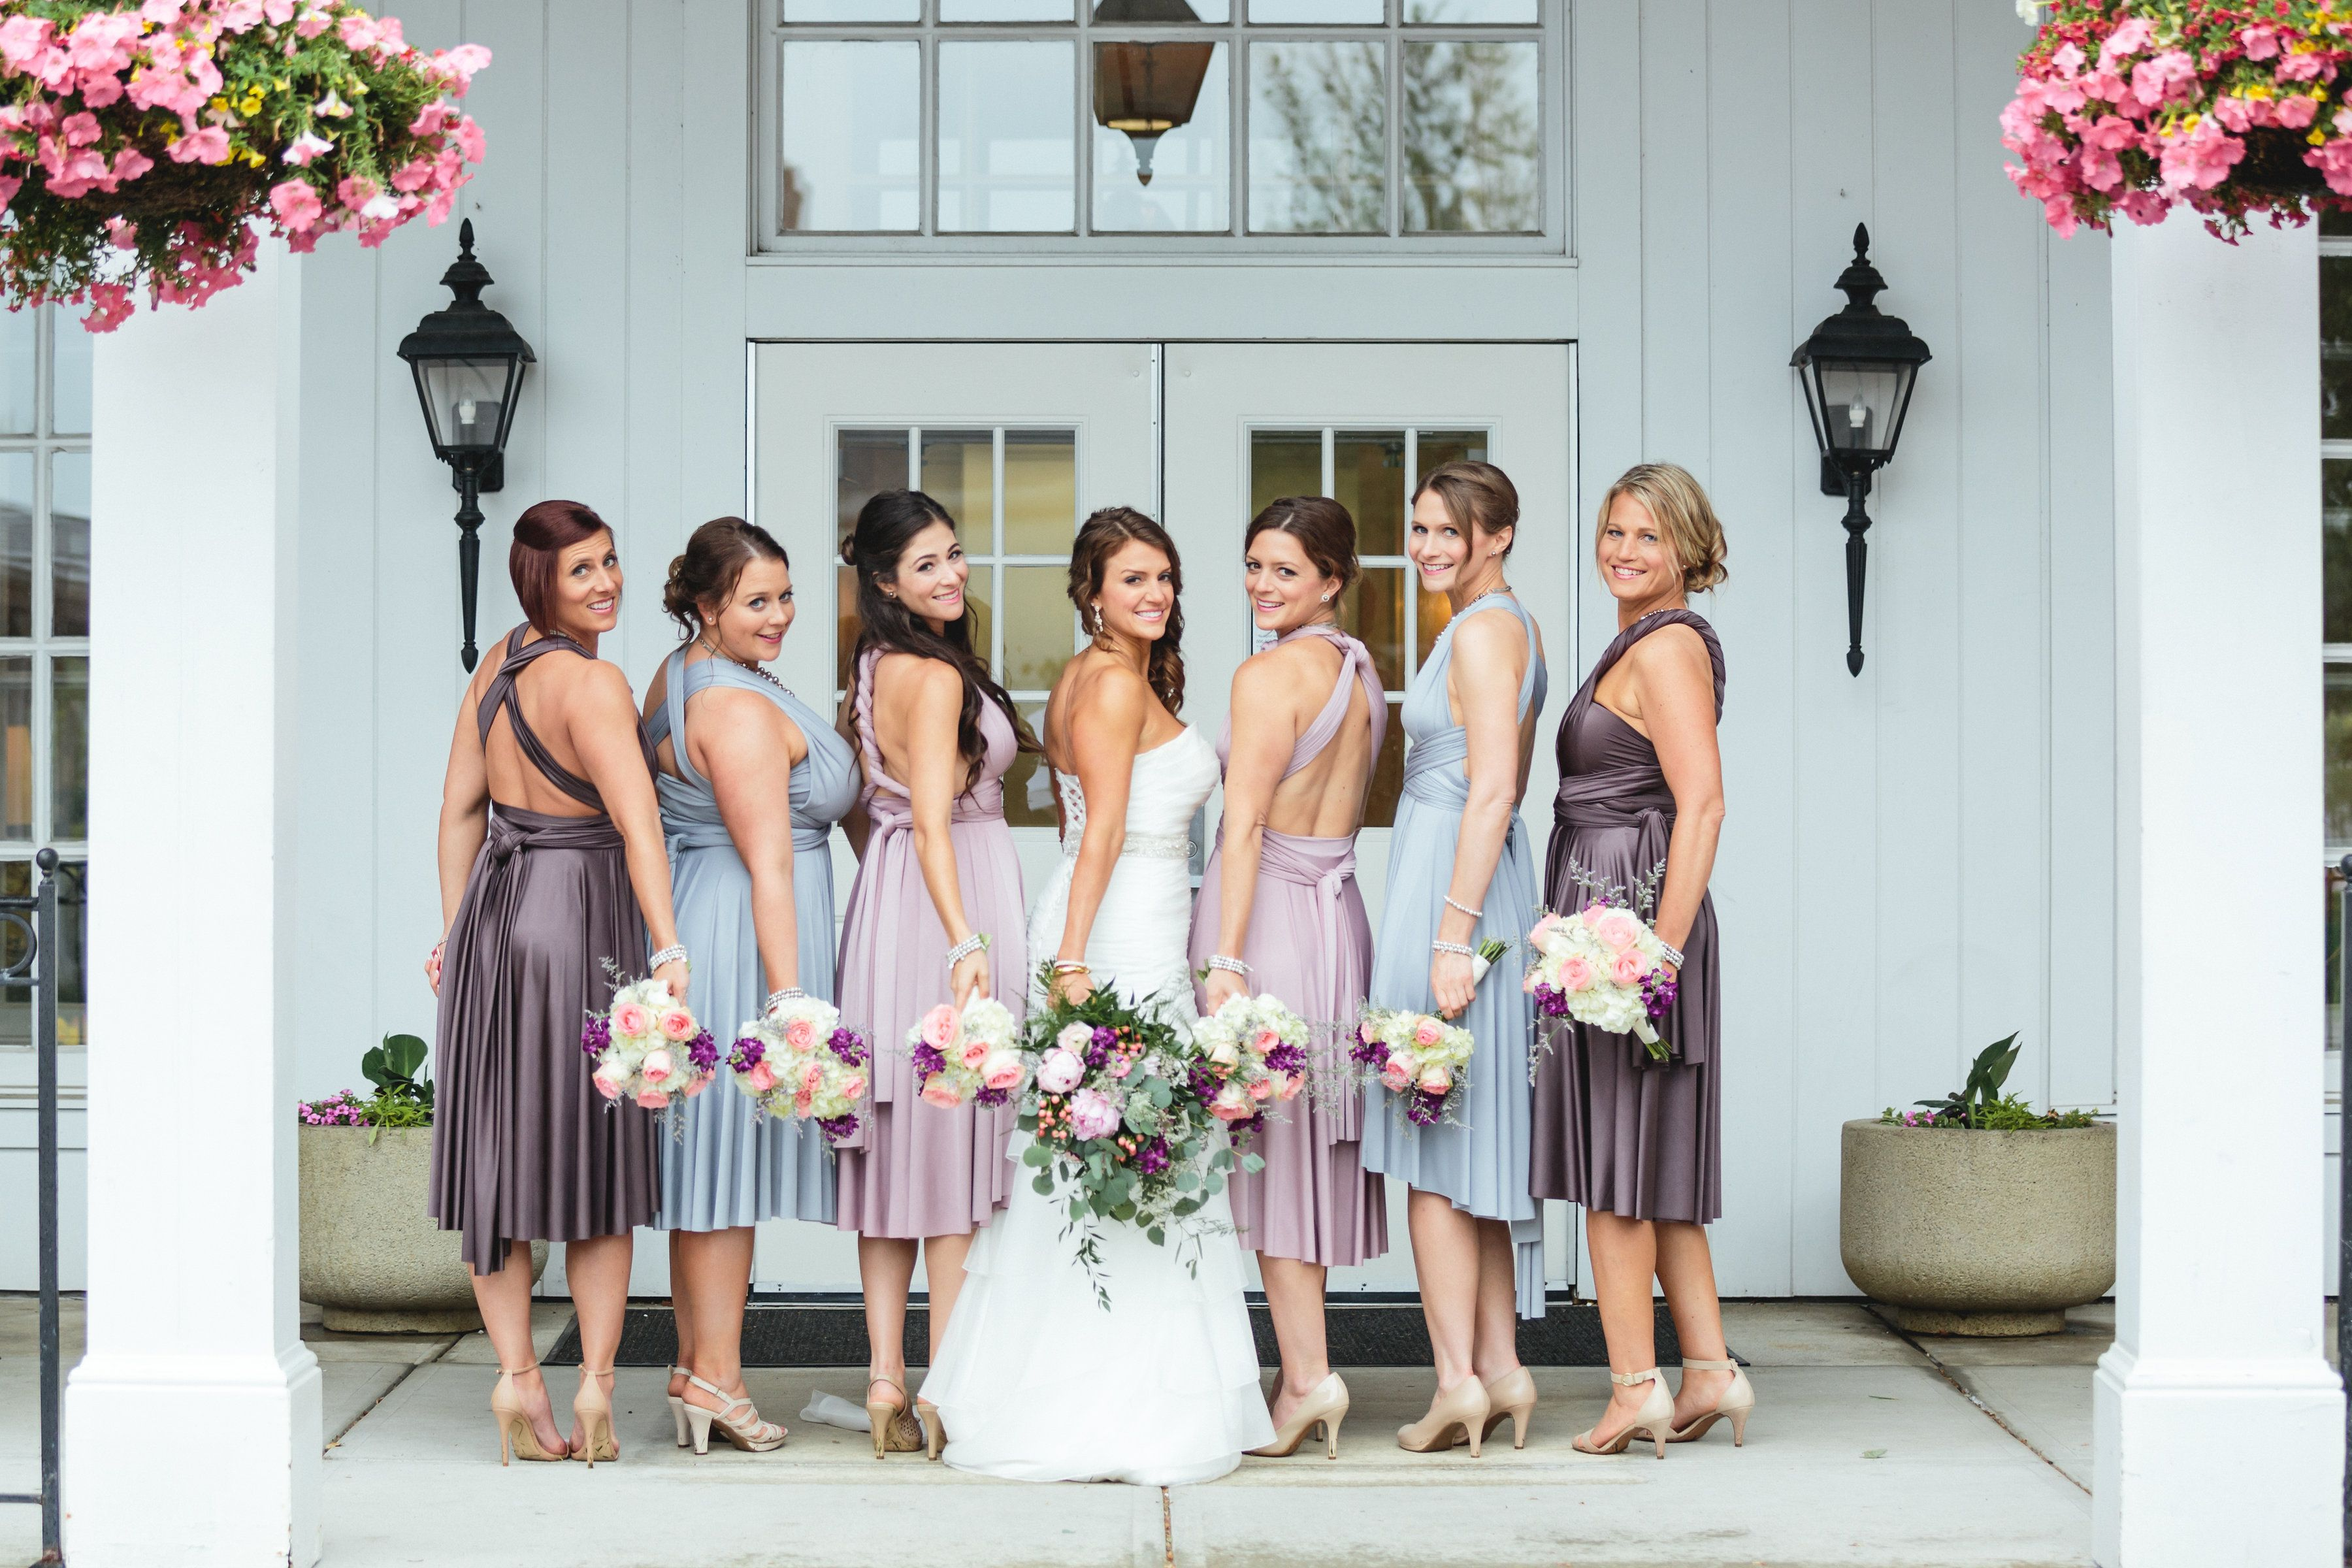 Mix and match slate heather light blue twobirds bridesmaid mix and match slate heather light blue twobirds bridesmaid dresses a ombrellifo Image collections